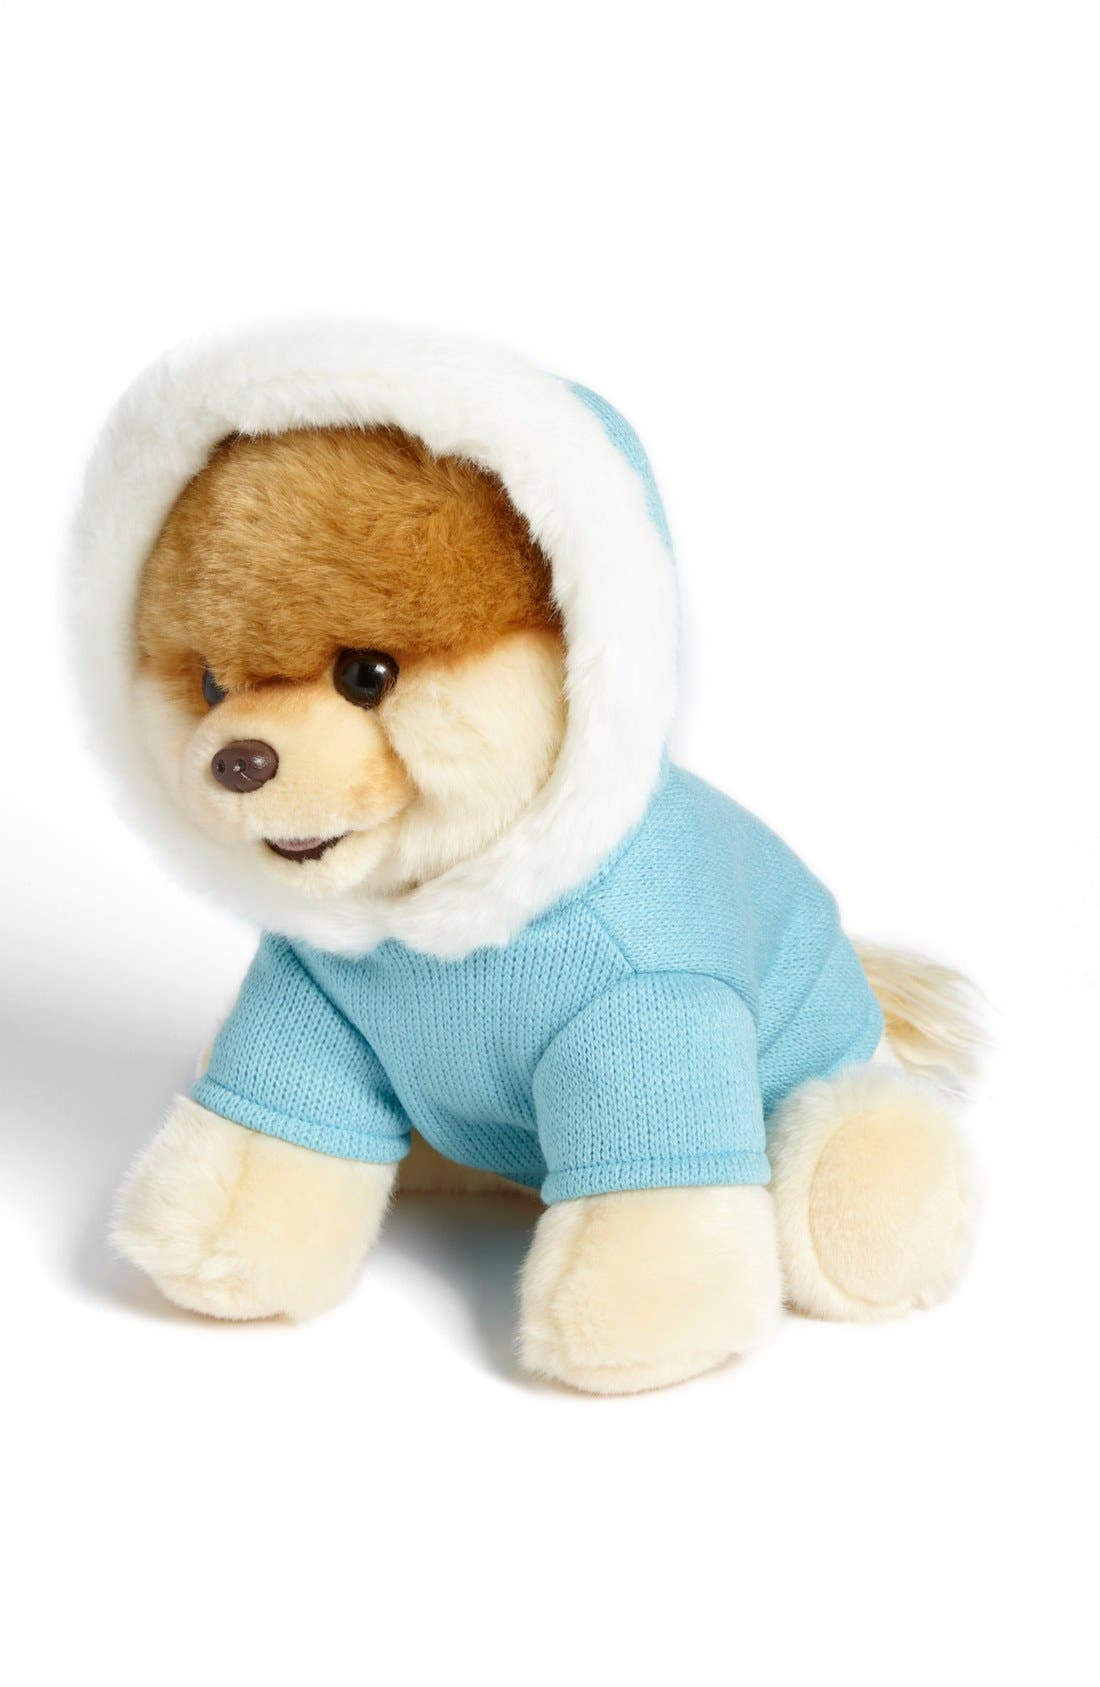 Alternate Image 1 Selected - Gund 'Boo' Stuffed Animal (Nordstrom Exclusive)